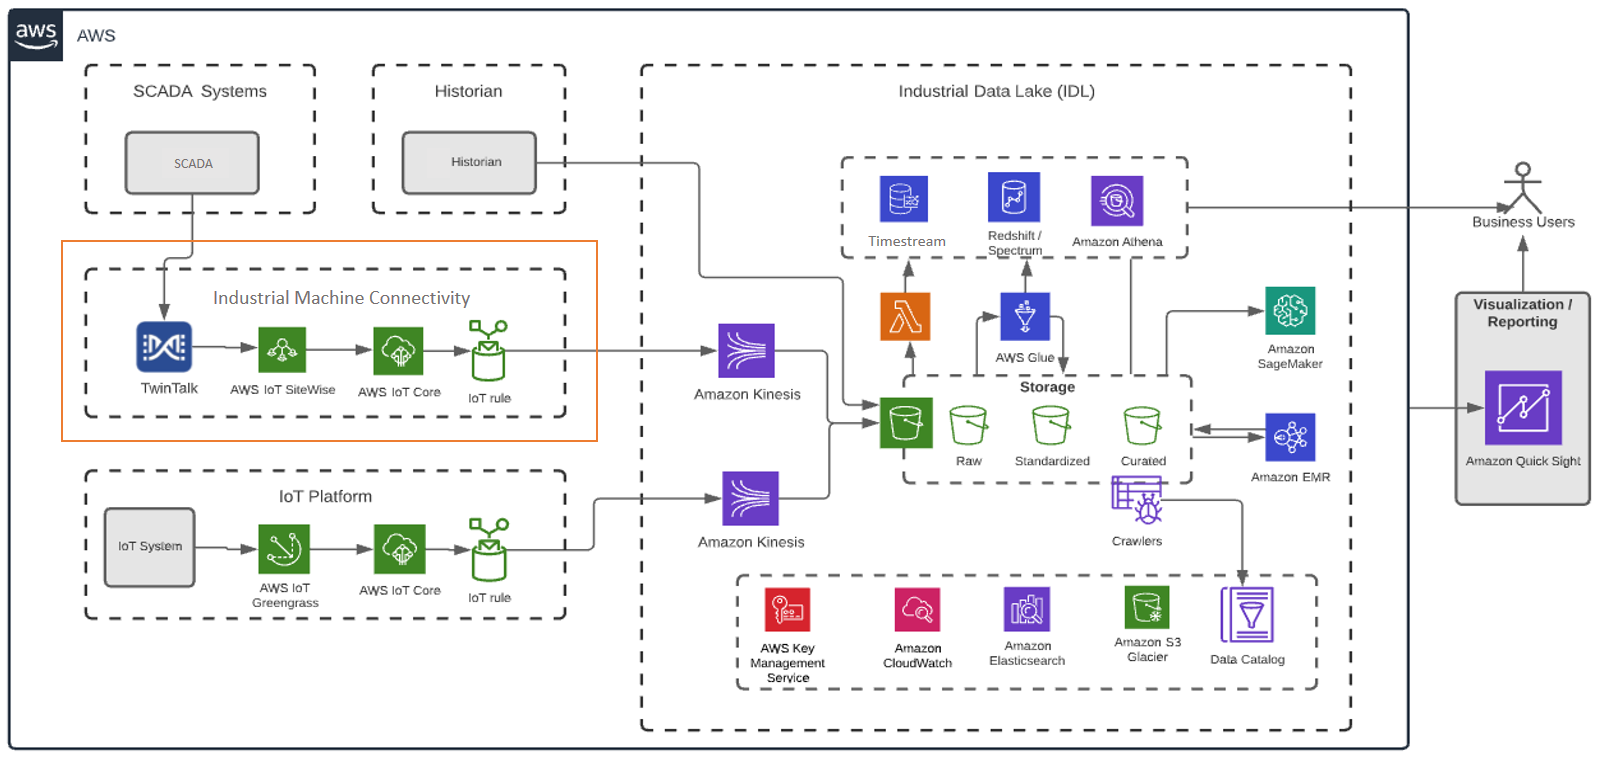 bpx energy Production Monitoring and Surveillance Reference architecture